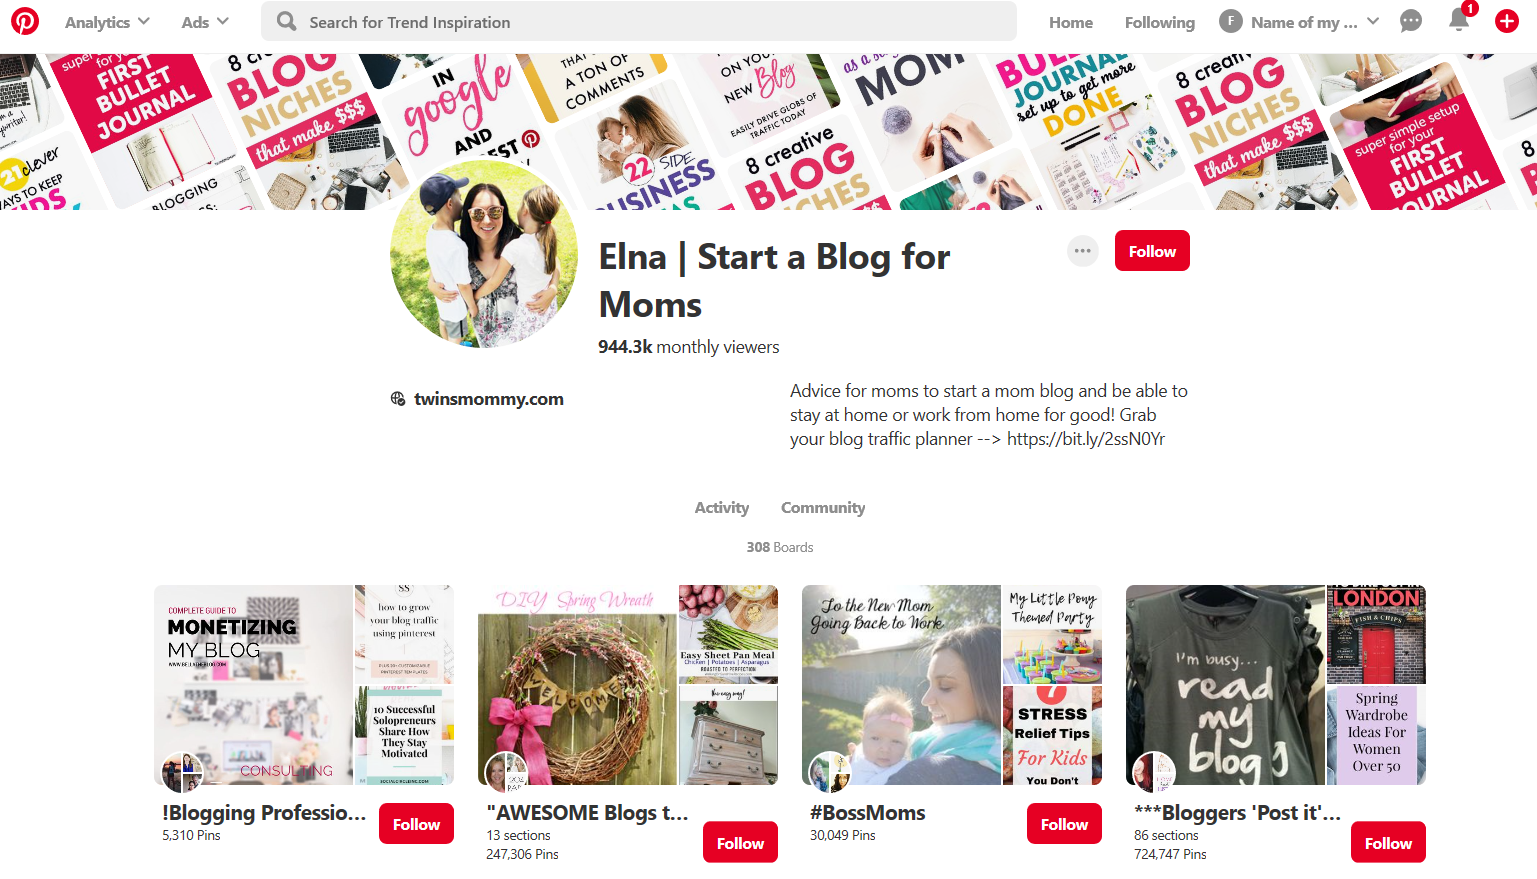 Elna from Start a Blog for Moms pinterest profile account